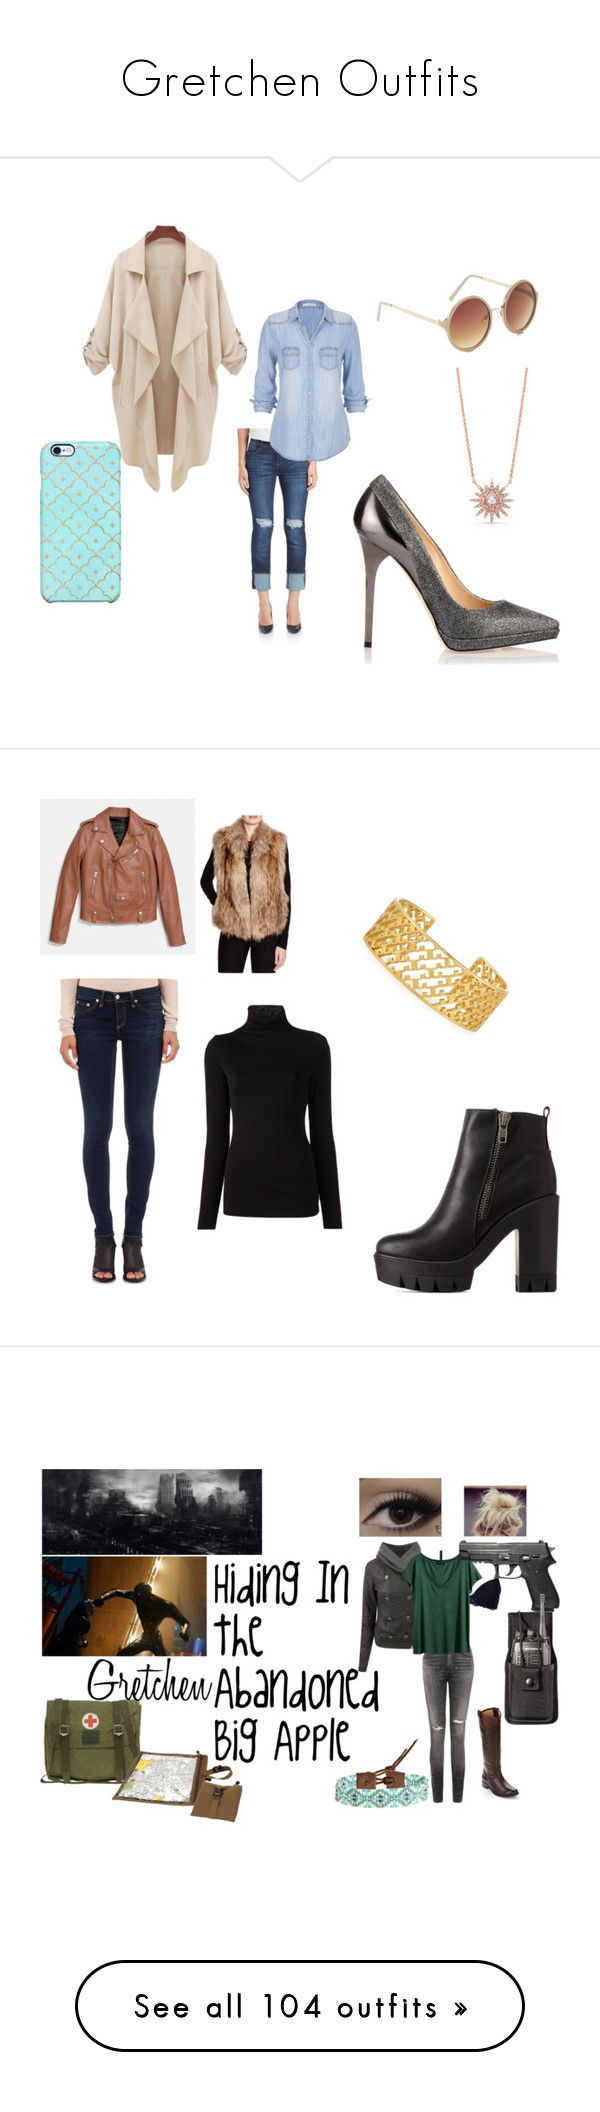 """""""Gretchen Outfits"""" by welcometoweirdschool on Polyvore featuring Kensie, maurices, Uncommon, BCBGeneration, Jimmy Choo, women's clothing, women, female, woman and misses"""